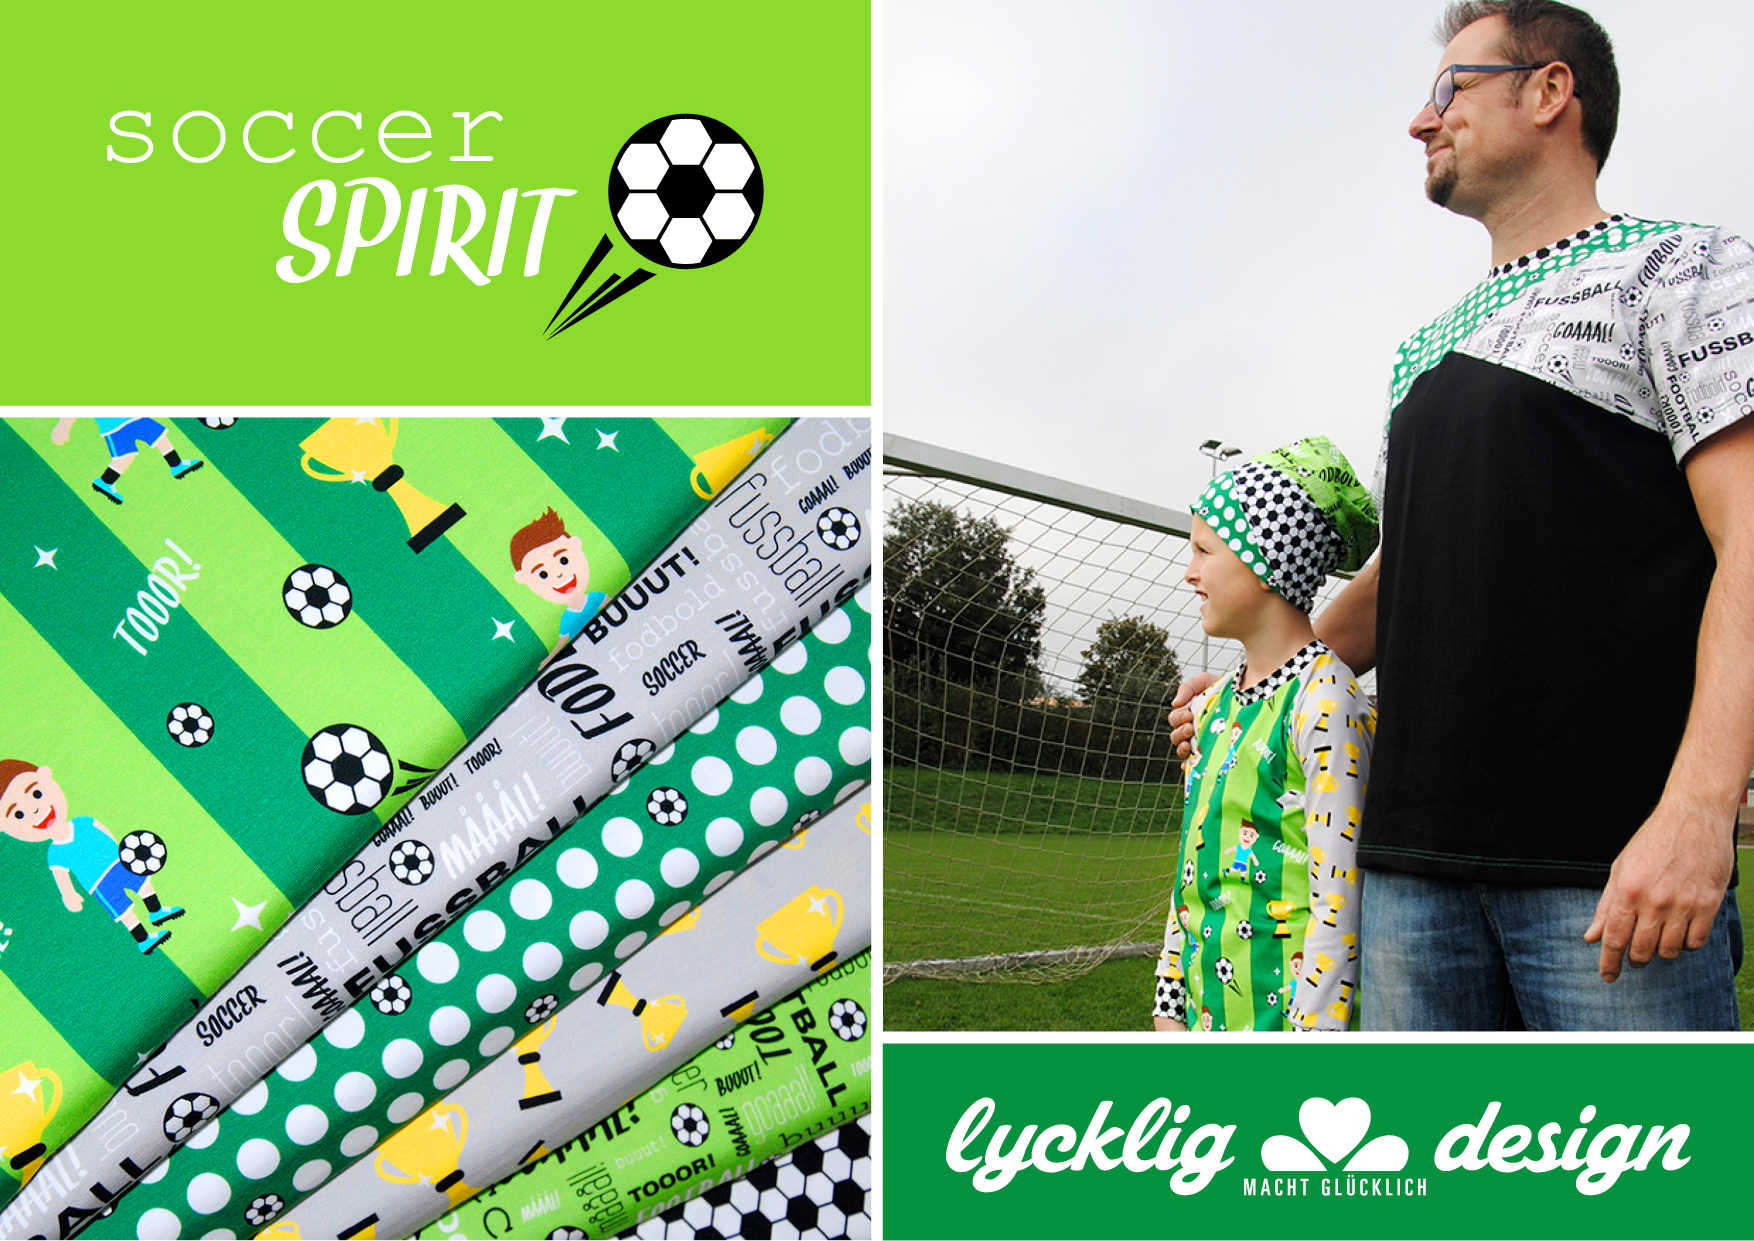 lyckligdesign_newsletter_soccerspirit_1